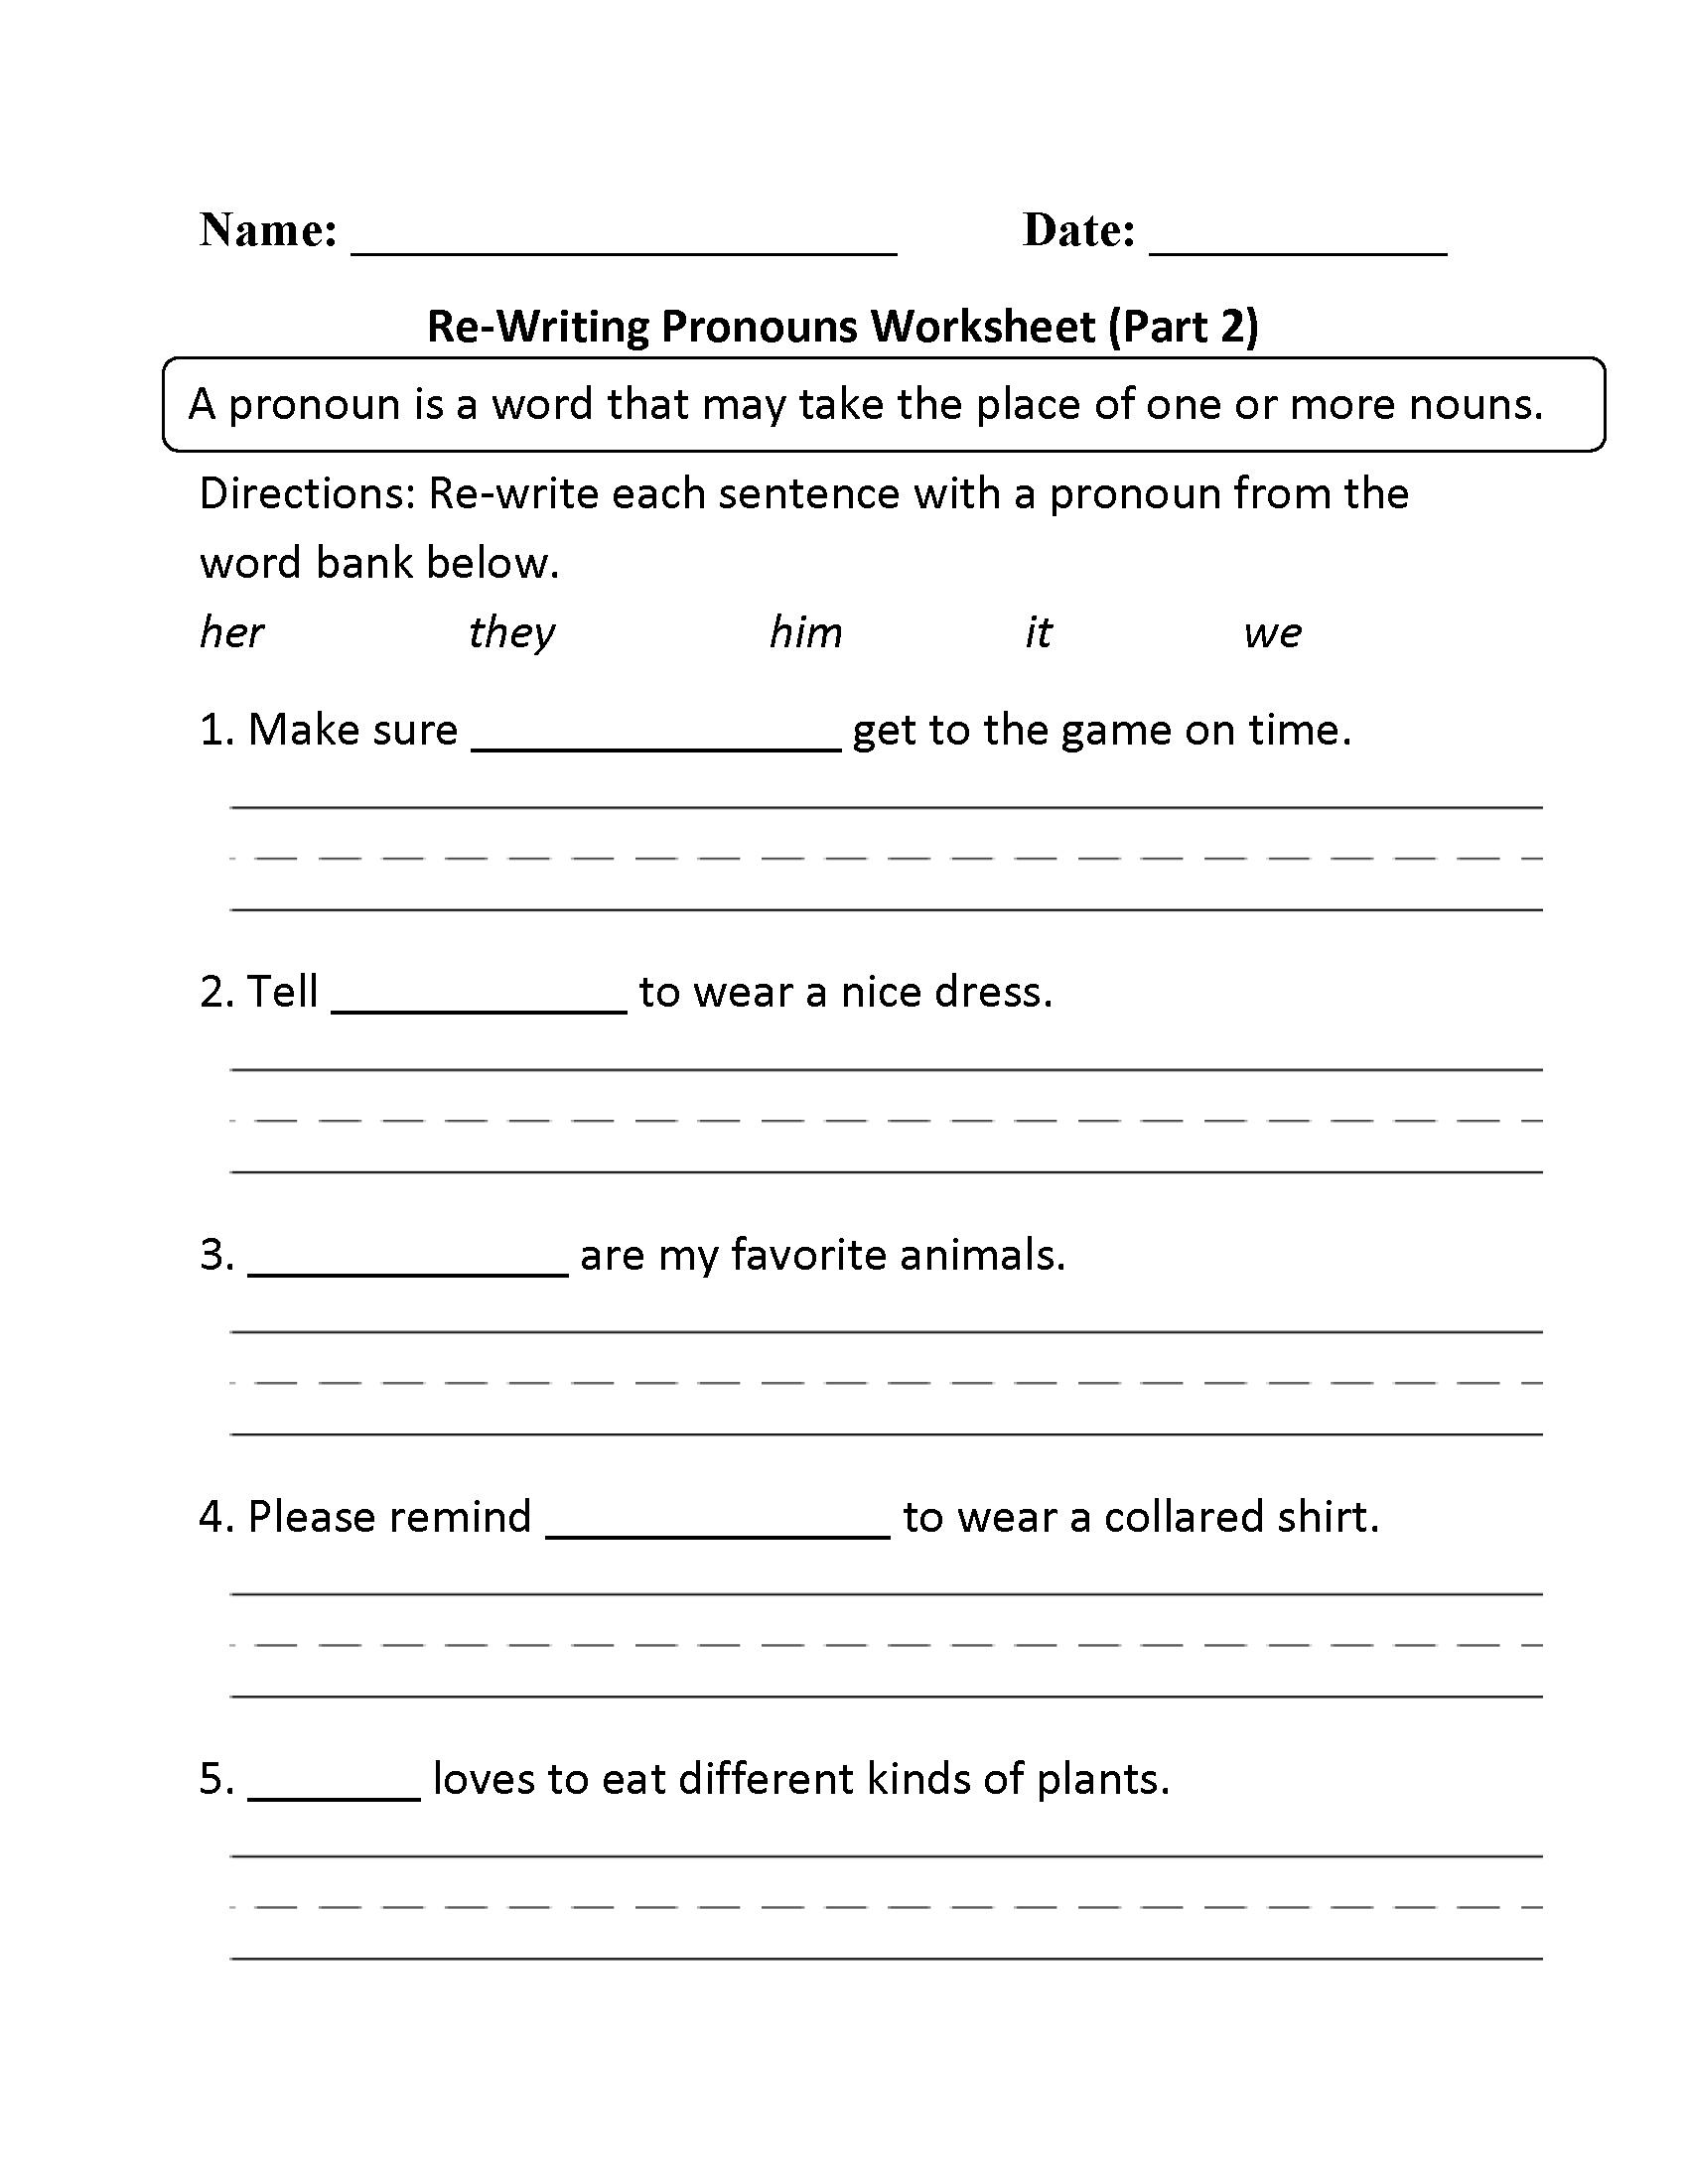 Re Writing Pronouns Worksheet Part 2